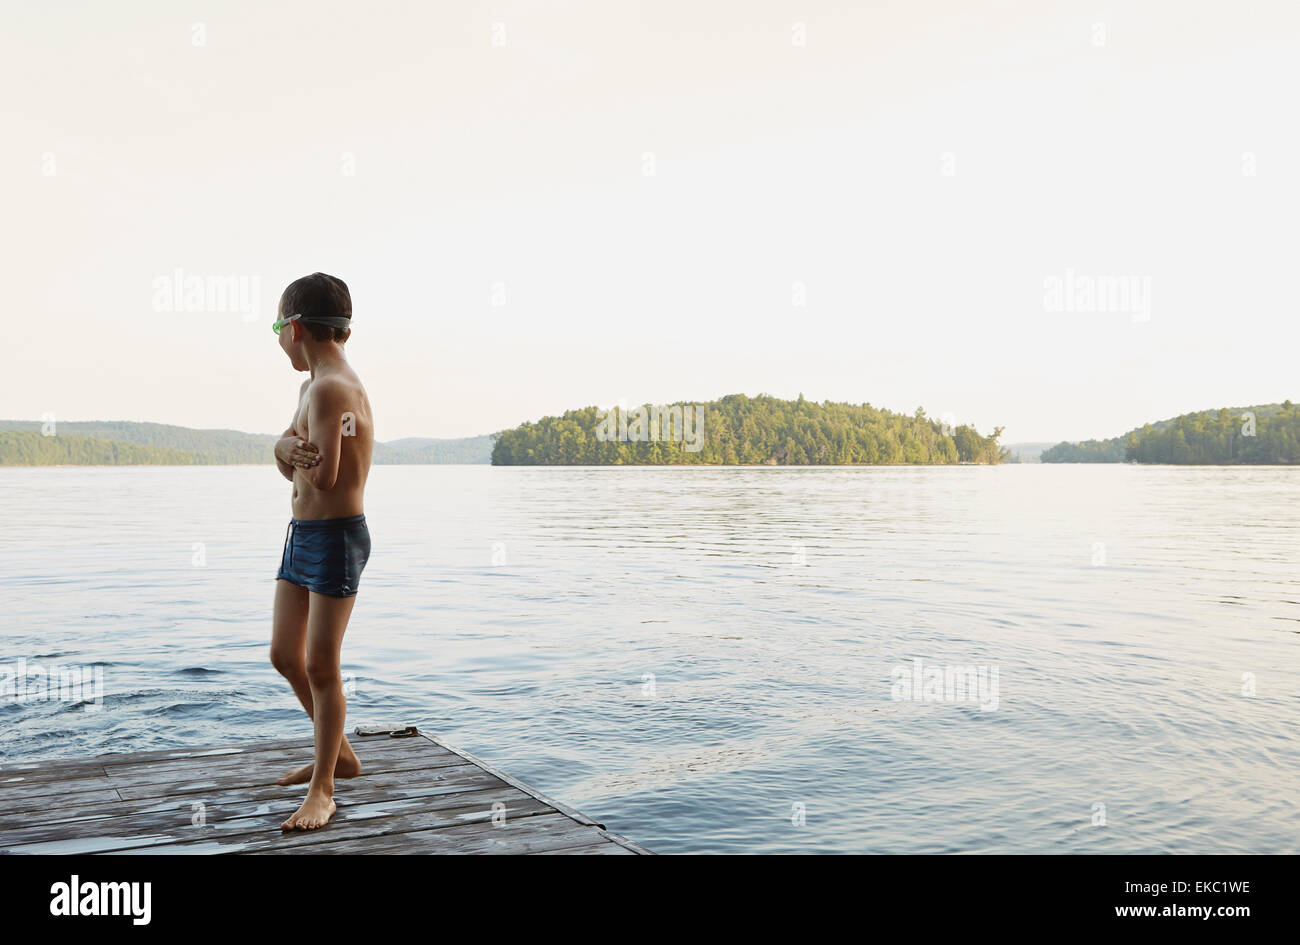 Boy looking out at lake from wooden pier, Ontario, Canada - Stock Image